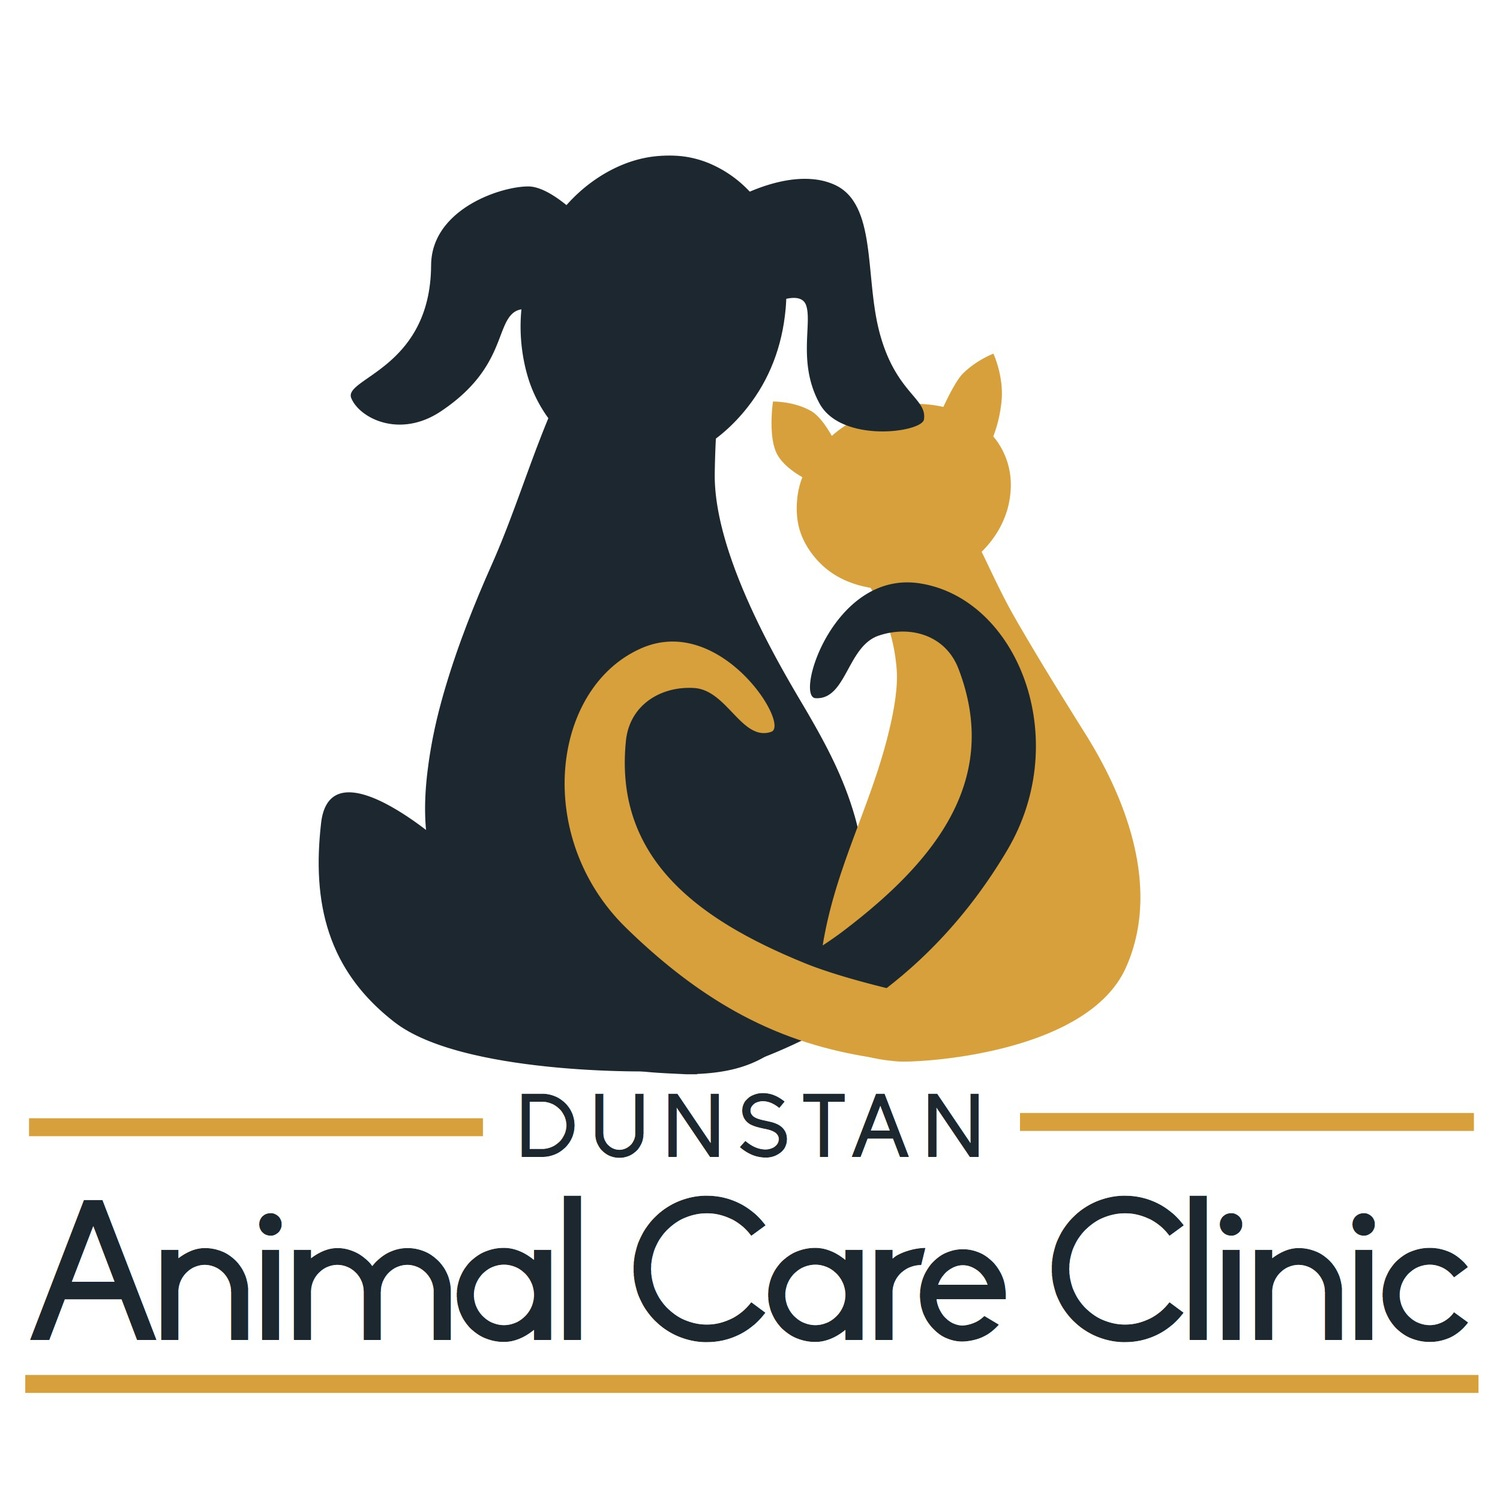 Dunstan Animal Care Clinic